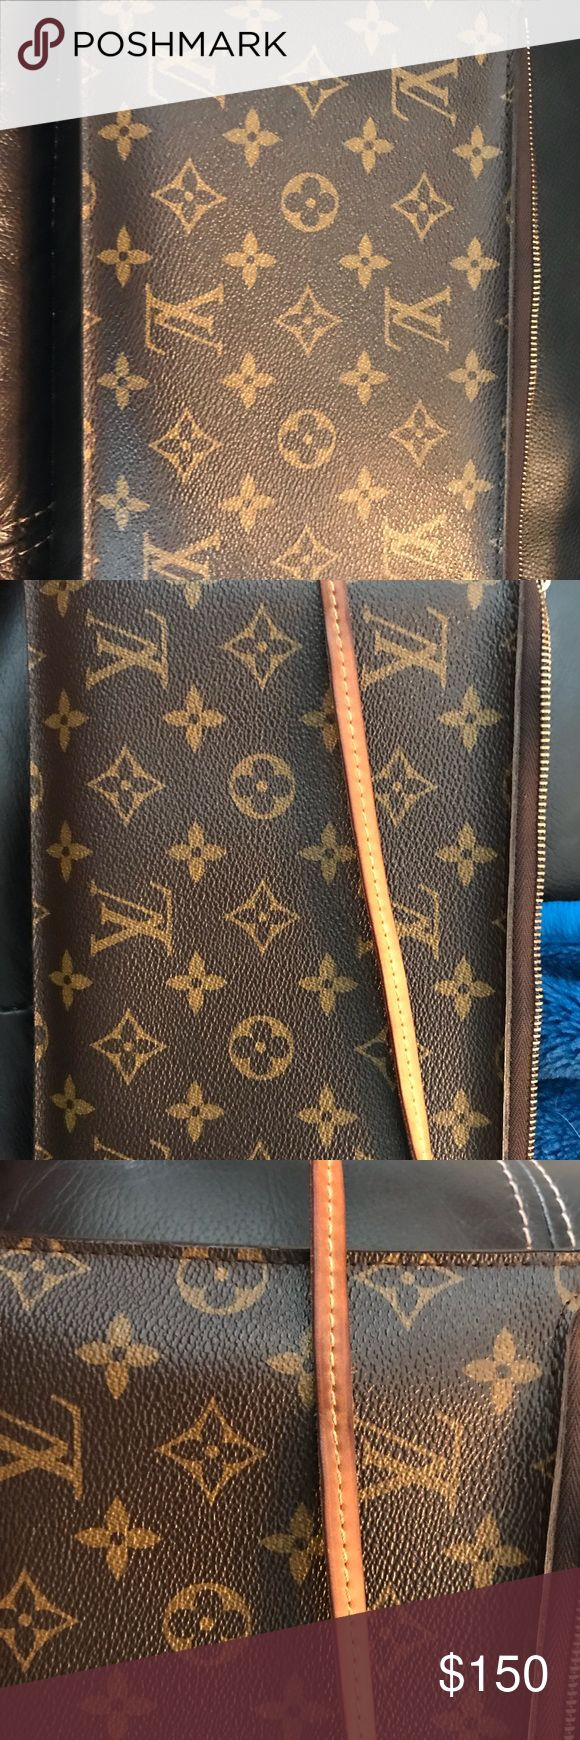 Authentic Louis Vuitton Wristlet **Authentic** Louis Vuitton wristlet. Came with my Neverfull MM picture of tag with serial number. Please ask questions before purchase. Louis Vuitton Bags Clutches & Wristlets